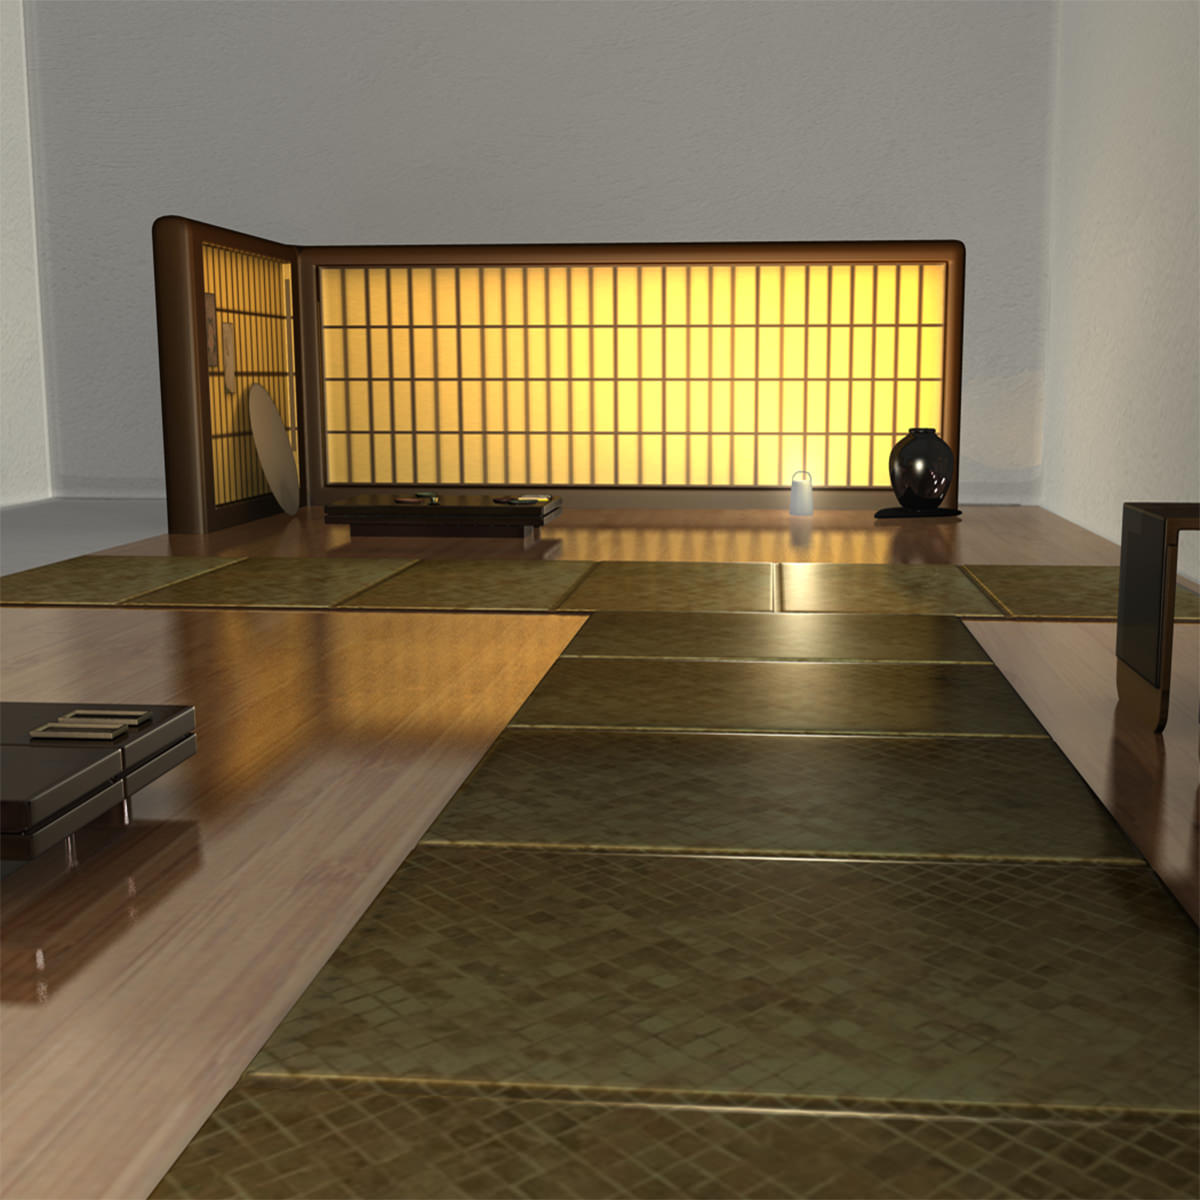 japanese tea house interior photo - 5